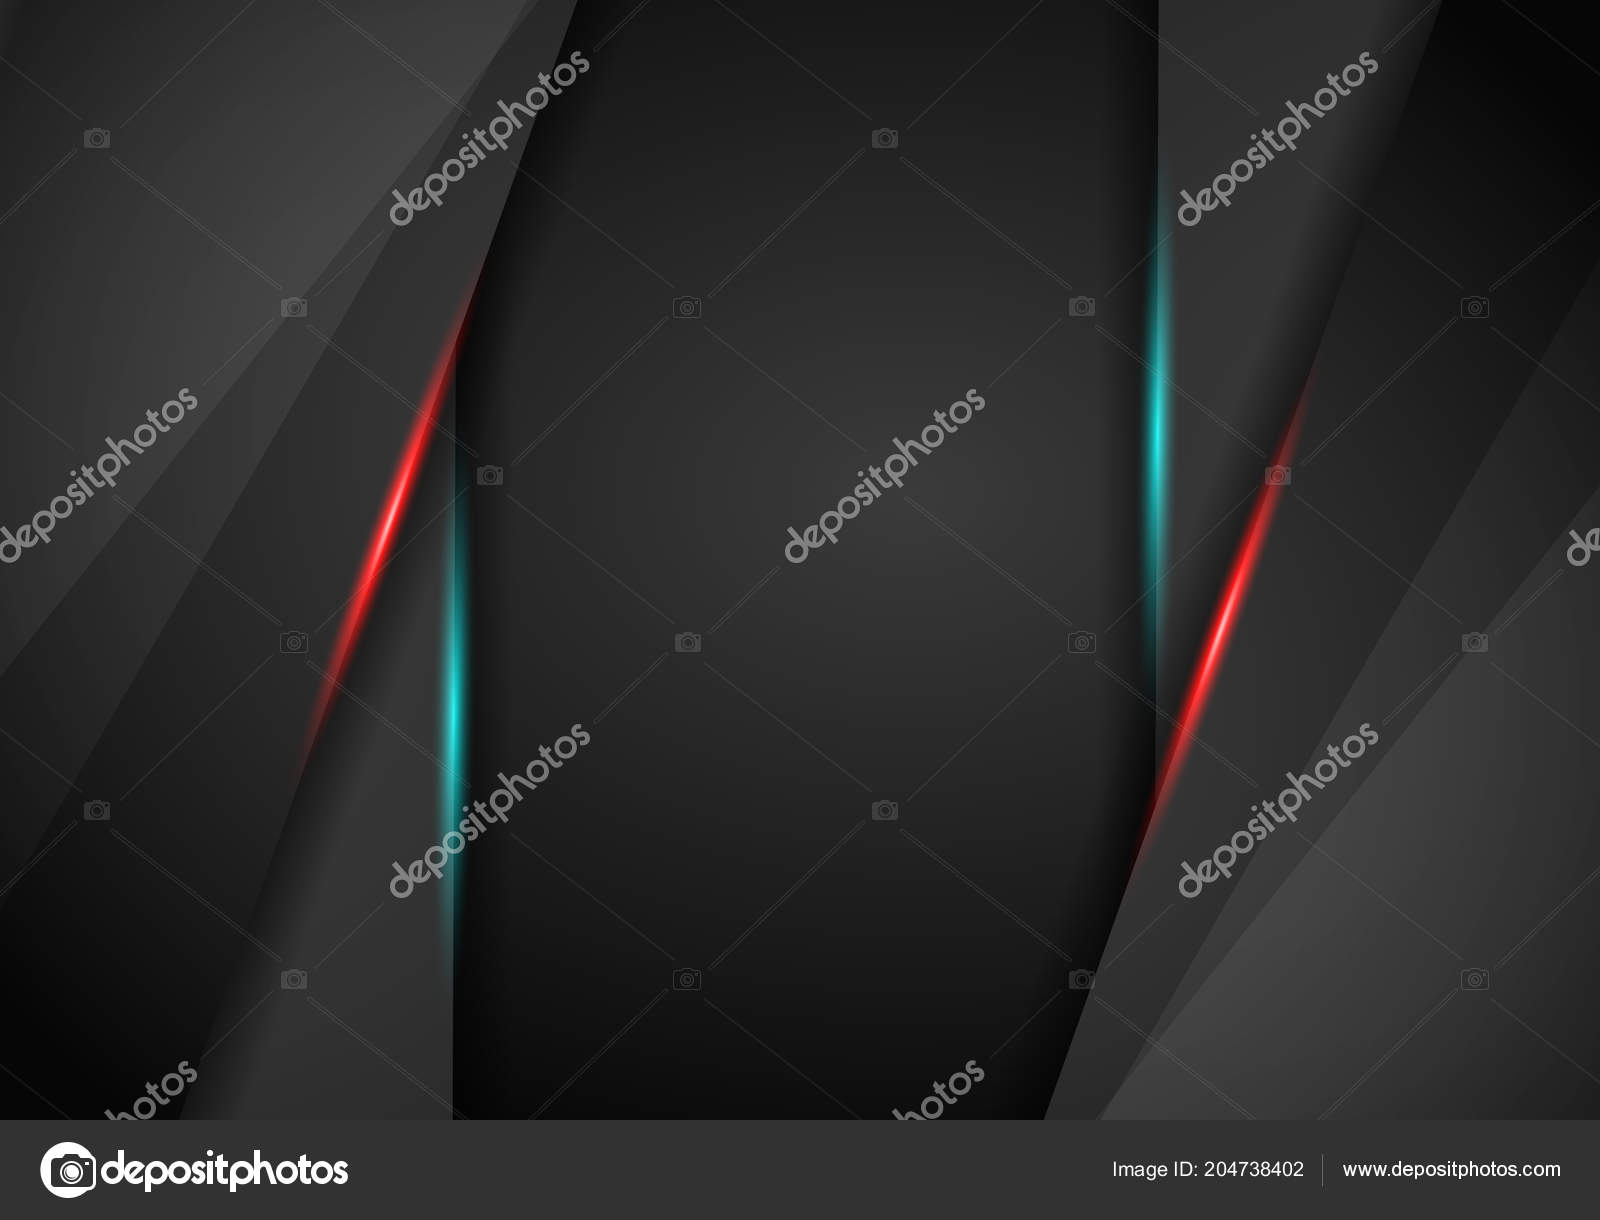 Black Background Overlap Dimension Red Blue Frame Layout